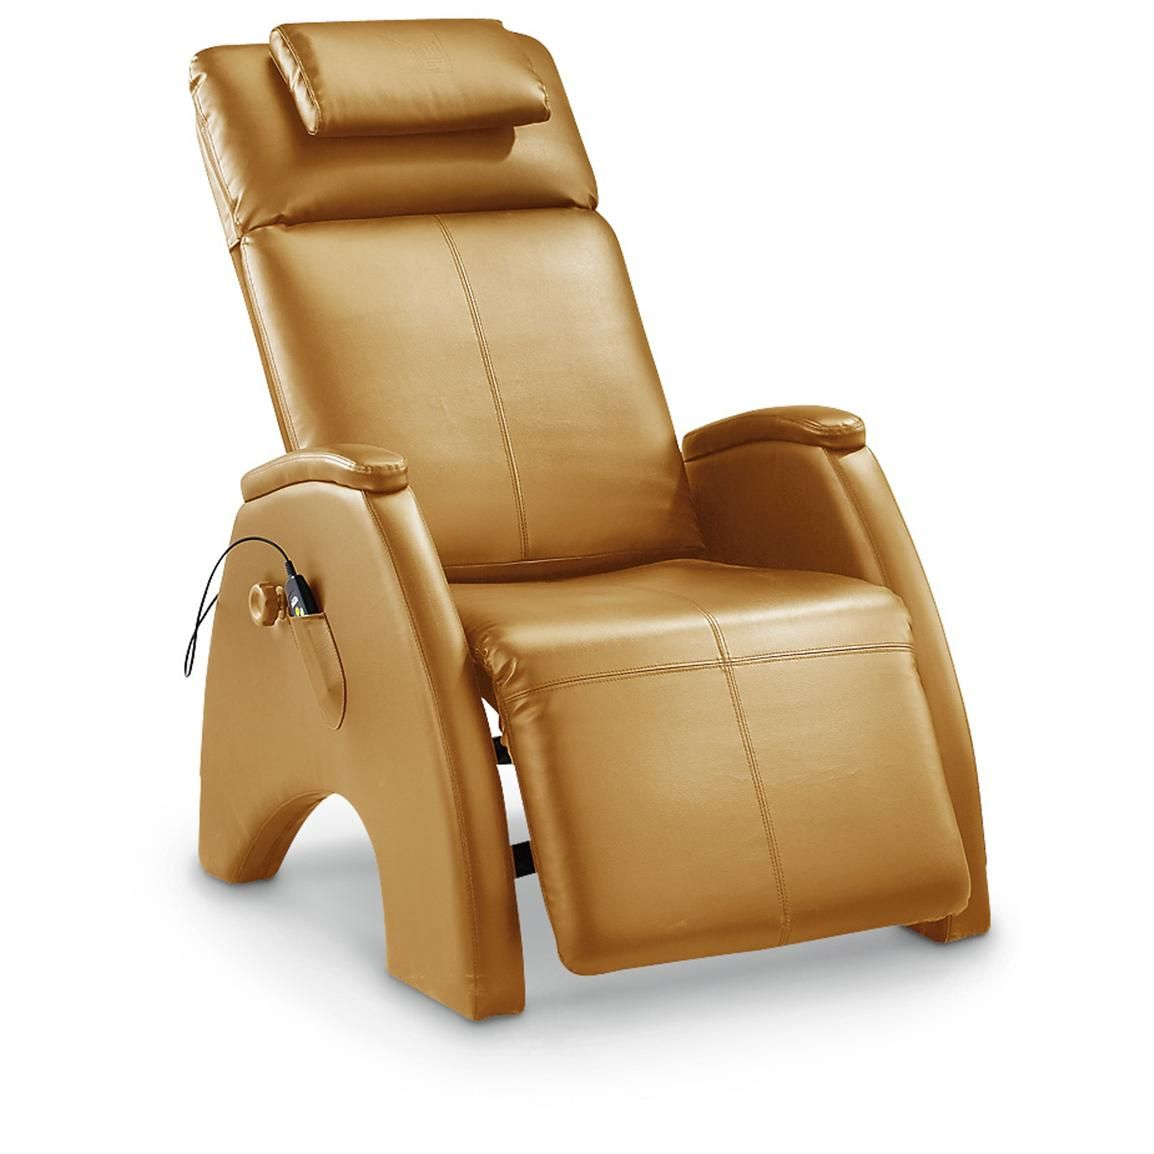 Tony Little Anti Gravity Massage Recliner Chair 225709